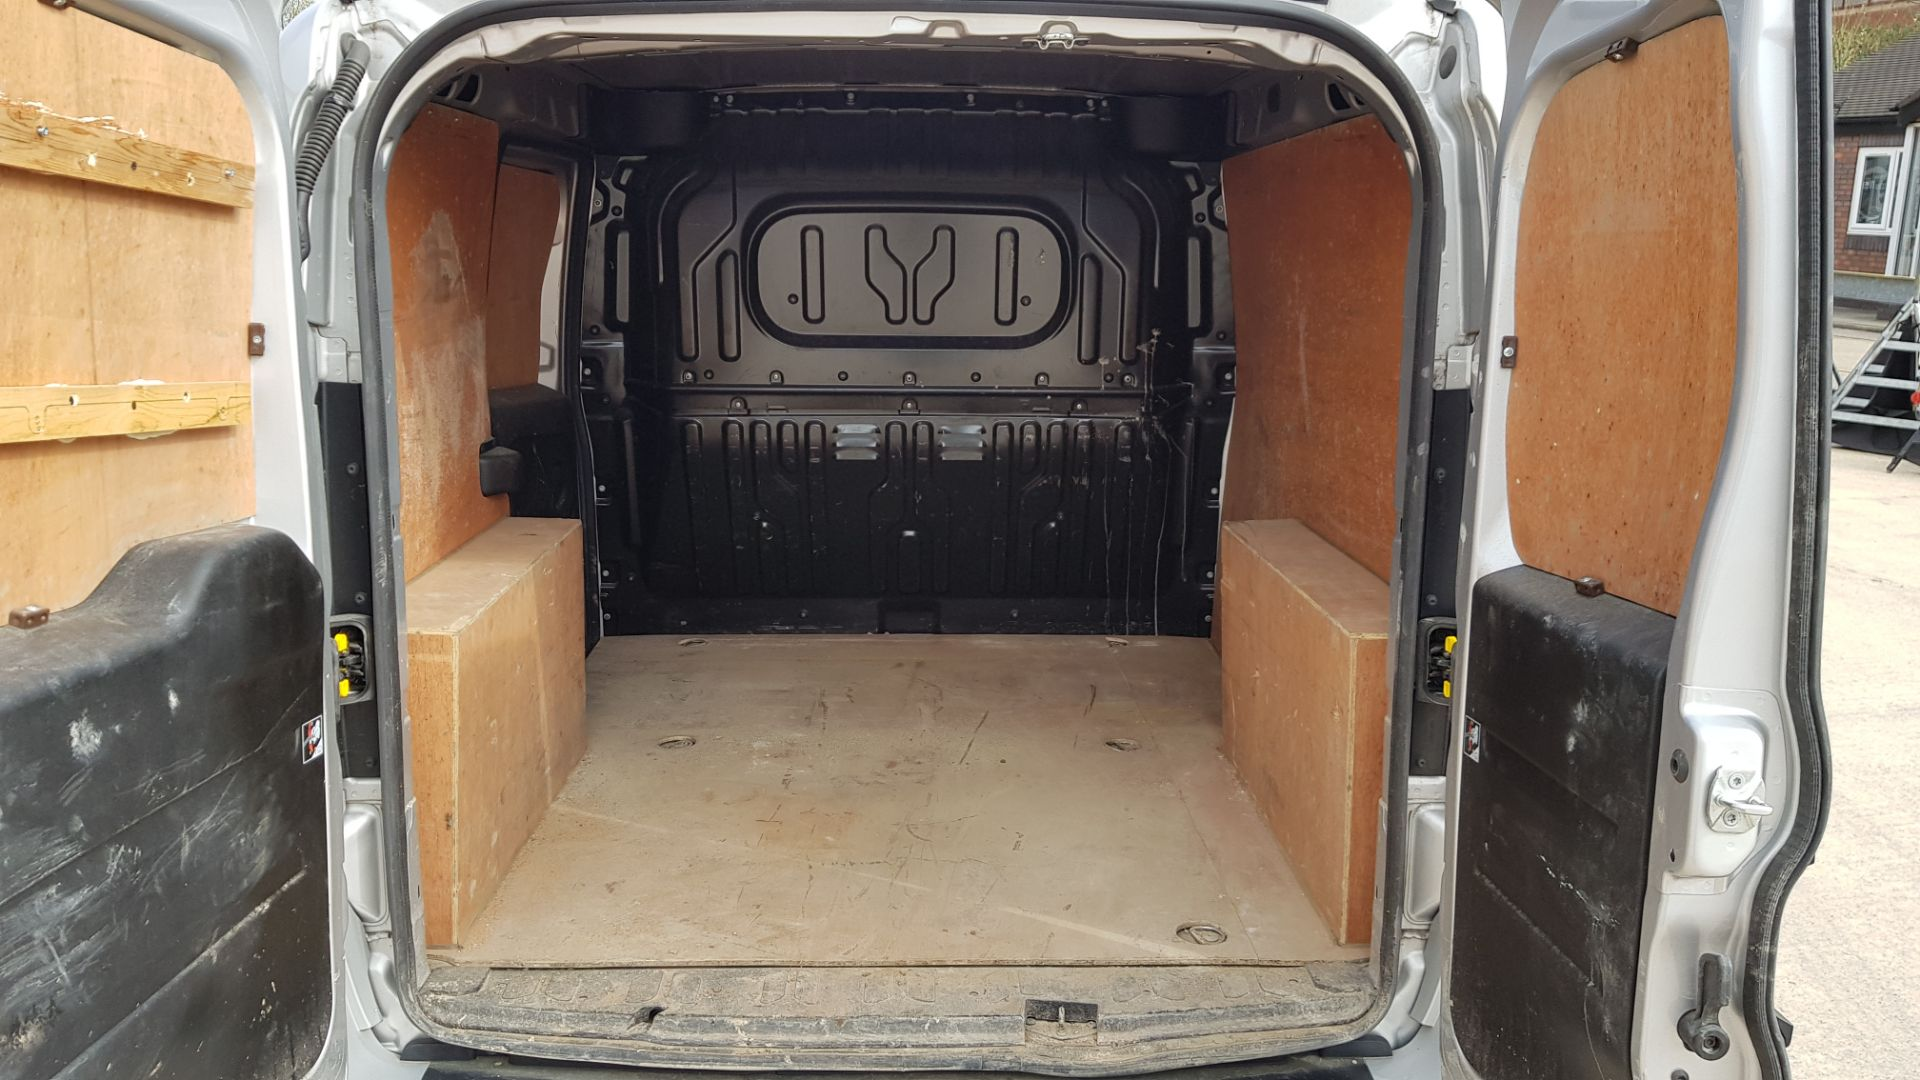 SILVER VAUXHALL COMBO 2000 SPORTIVE CDTI. ( DIESEL ) Reg : YR68 WAU Mileage : 39451 Details: WITH - Image 5 of 7